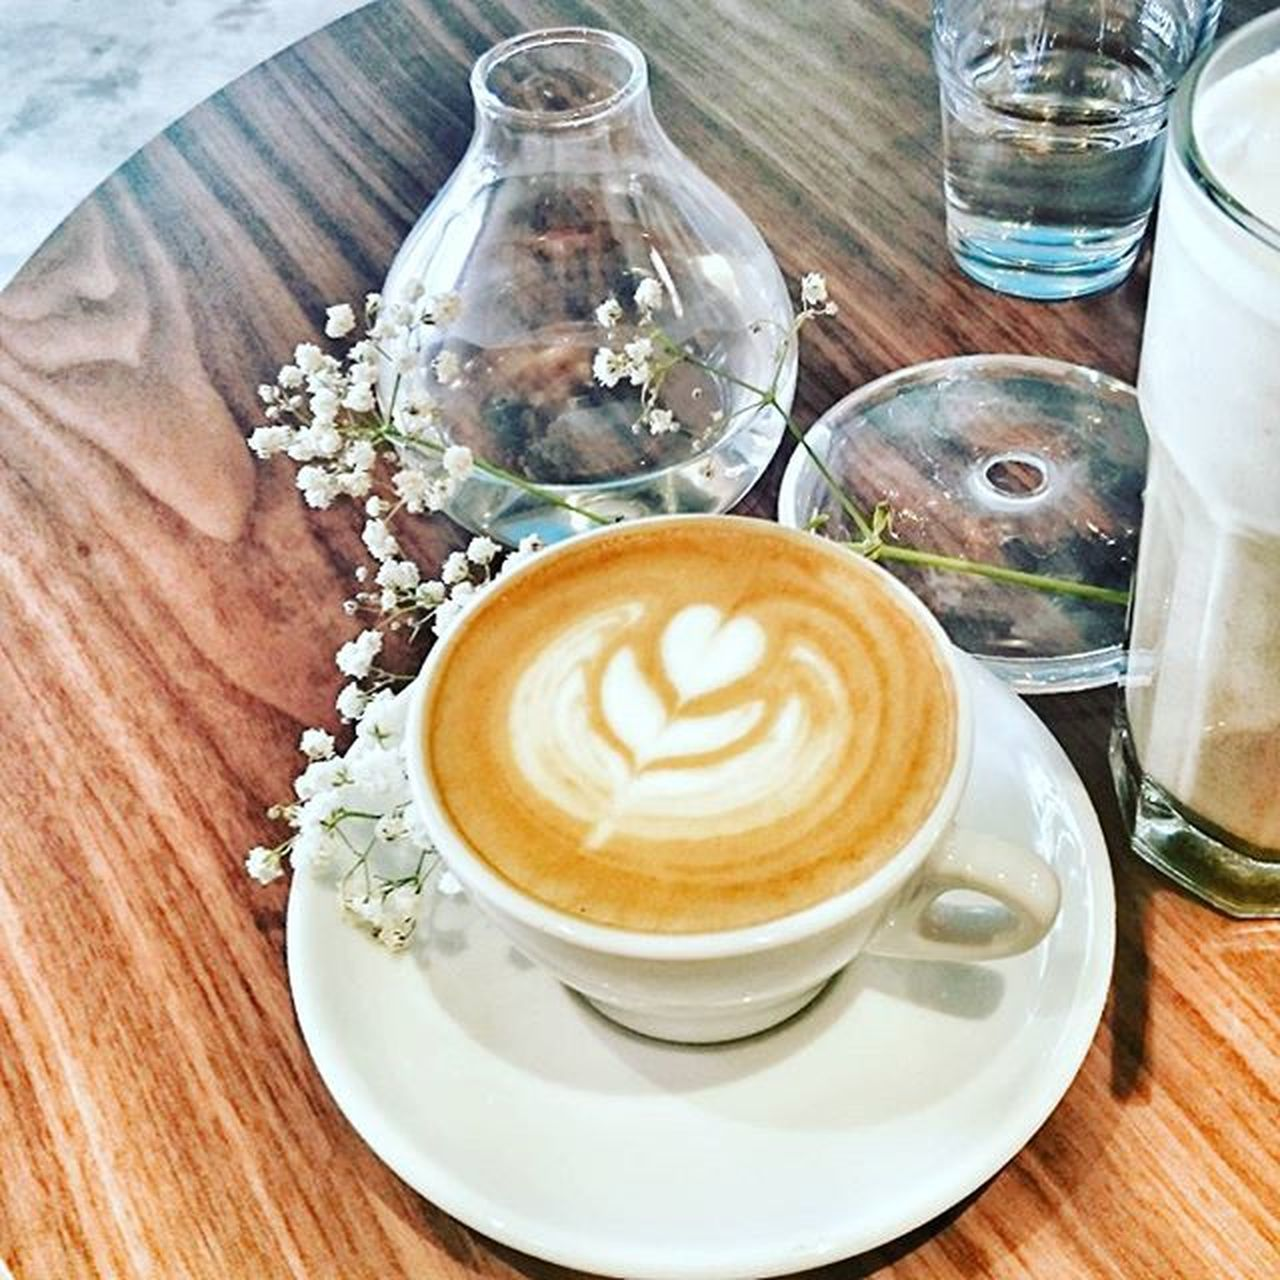 Brewing a cup of coffee without the mug for the second time.....😭 at my abode. My precious liquid...😍 (Pic. 📷 from last visit to Percolatesg Percolatecoffee ~ Cafeyouneed ) Nevertheless, Happy Hump Day all!